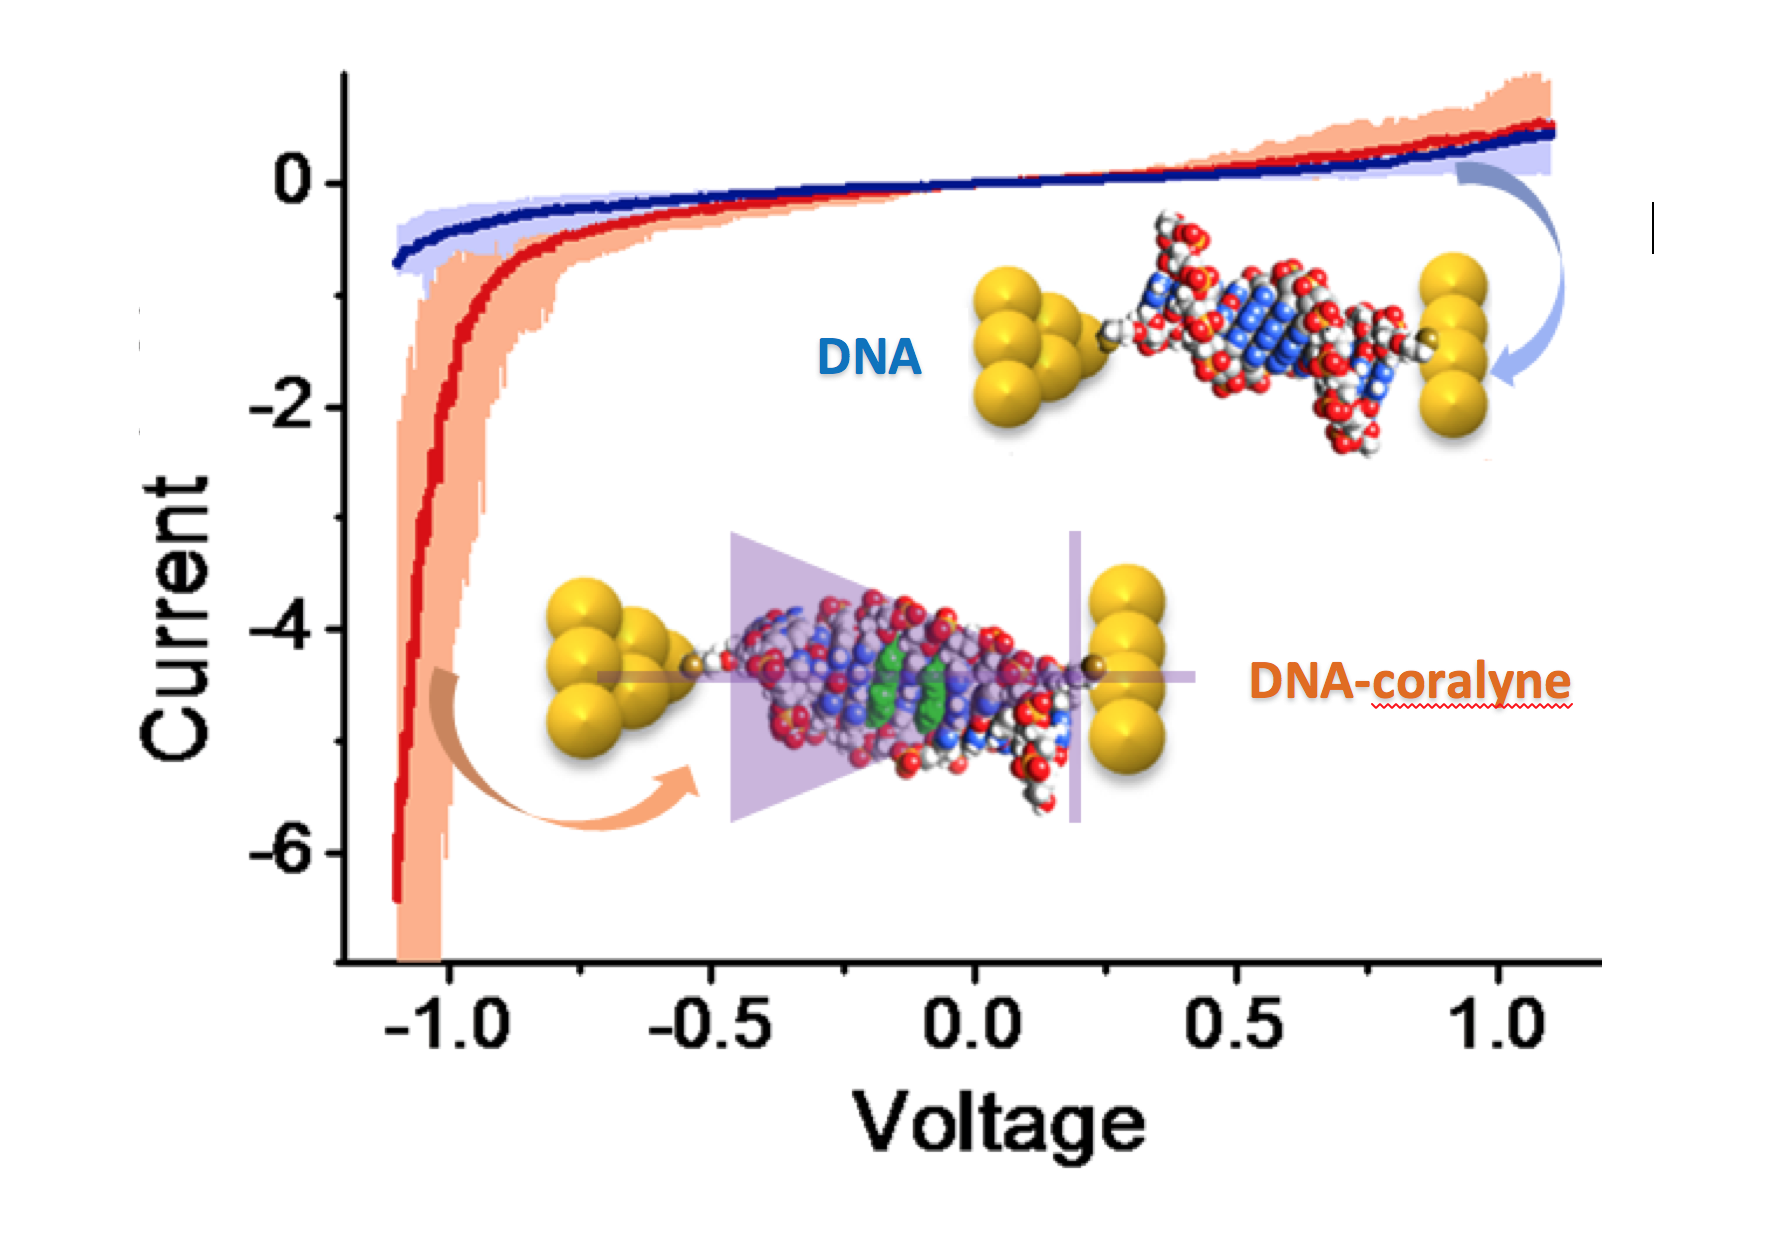 Building Molecular Circuits With Dna Funsizephysics Direction Of Current In A Circuit 3 While The Through Original Molecule Stays Essentially Same Regardless